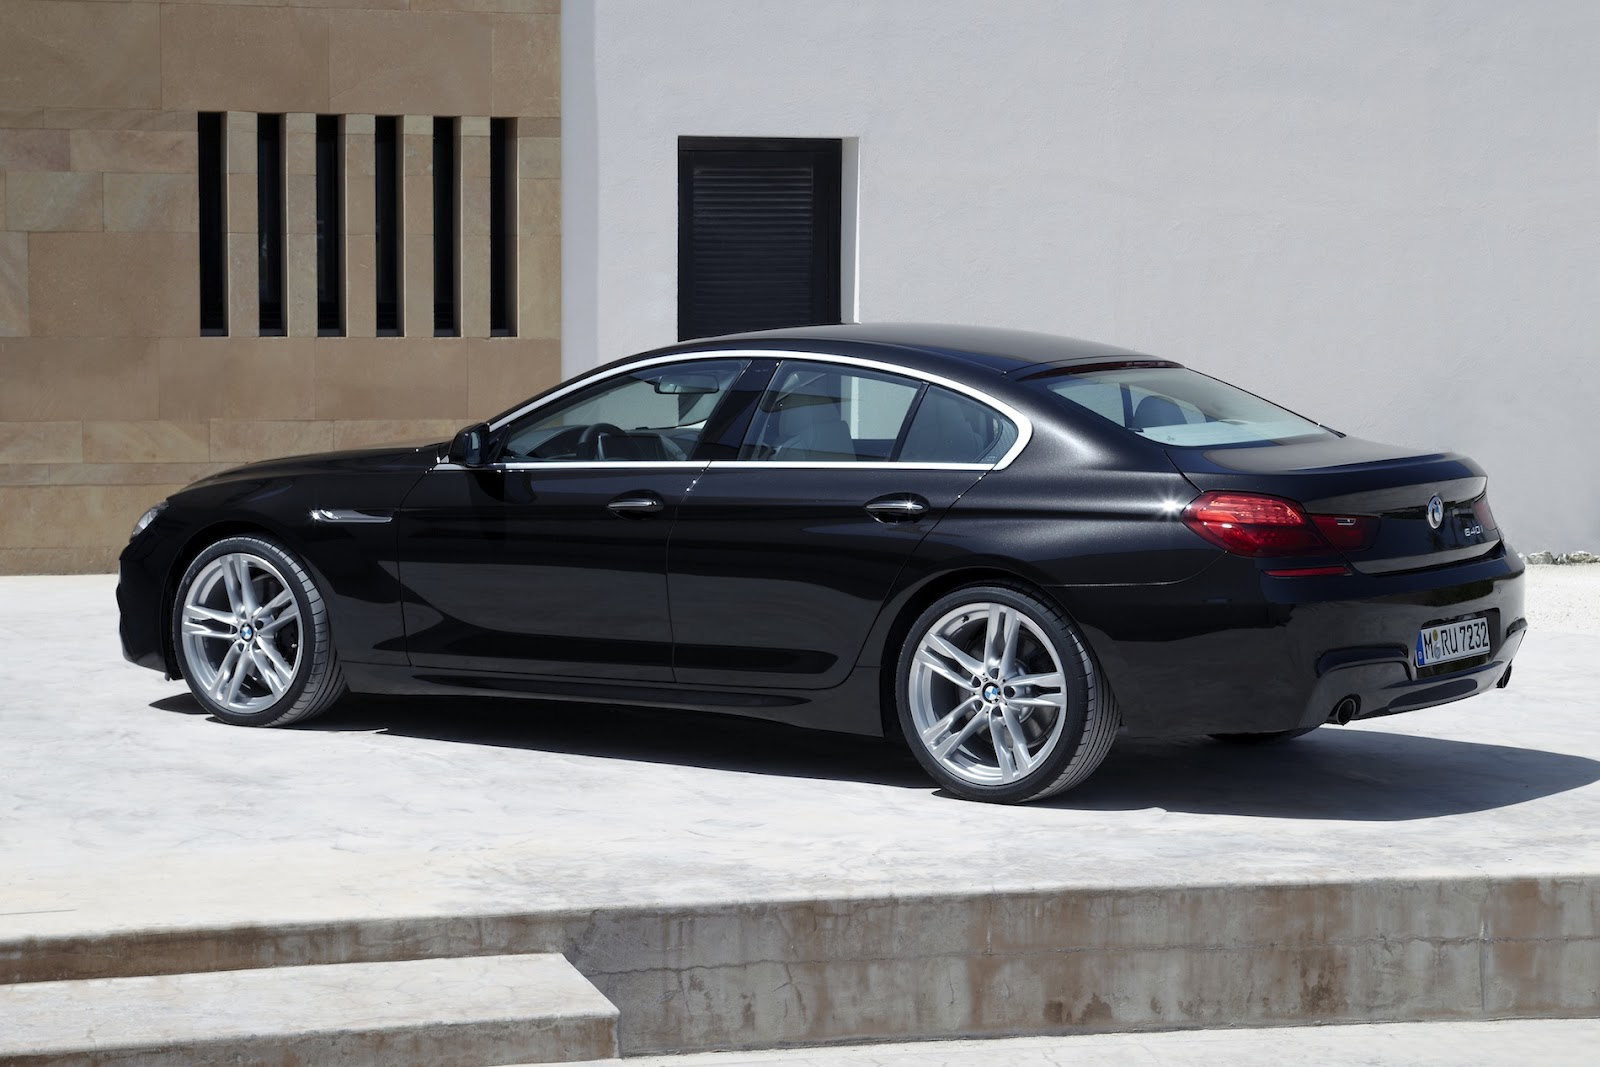 Production 2013 Bmw 650i Gran Coupe Gallery Automotive